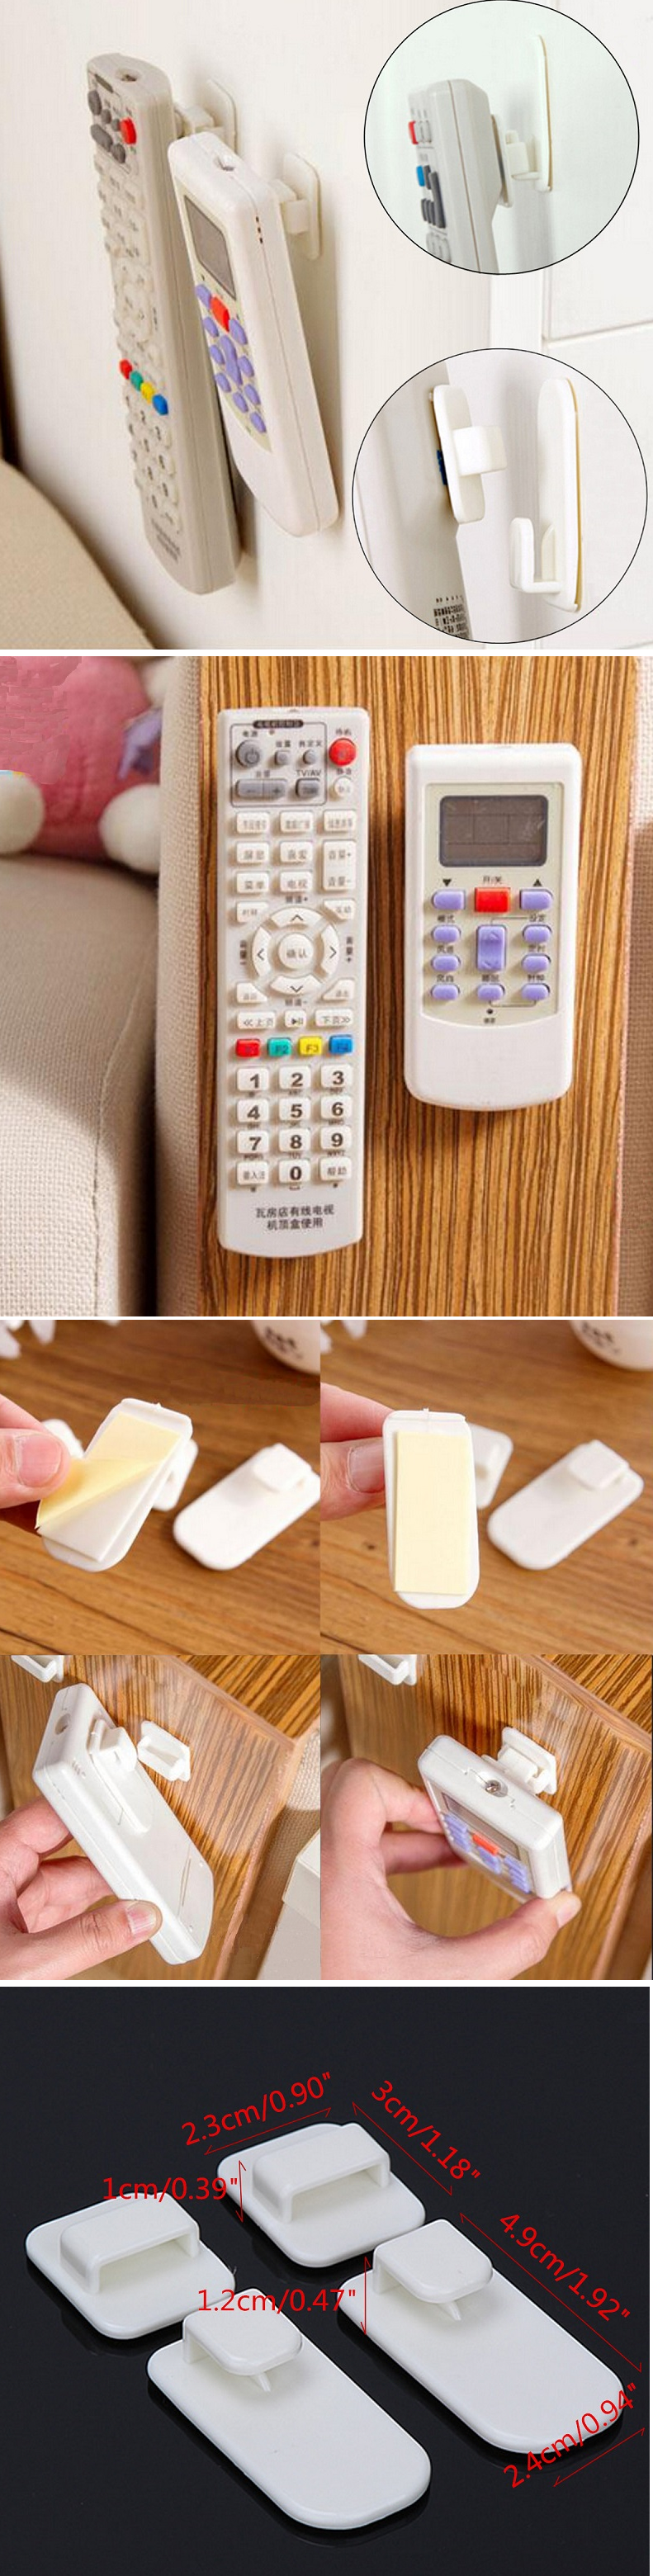 2 Set TV Remote Control Air Conditioning Sticky Hook Self ...